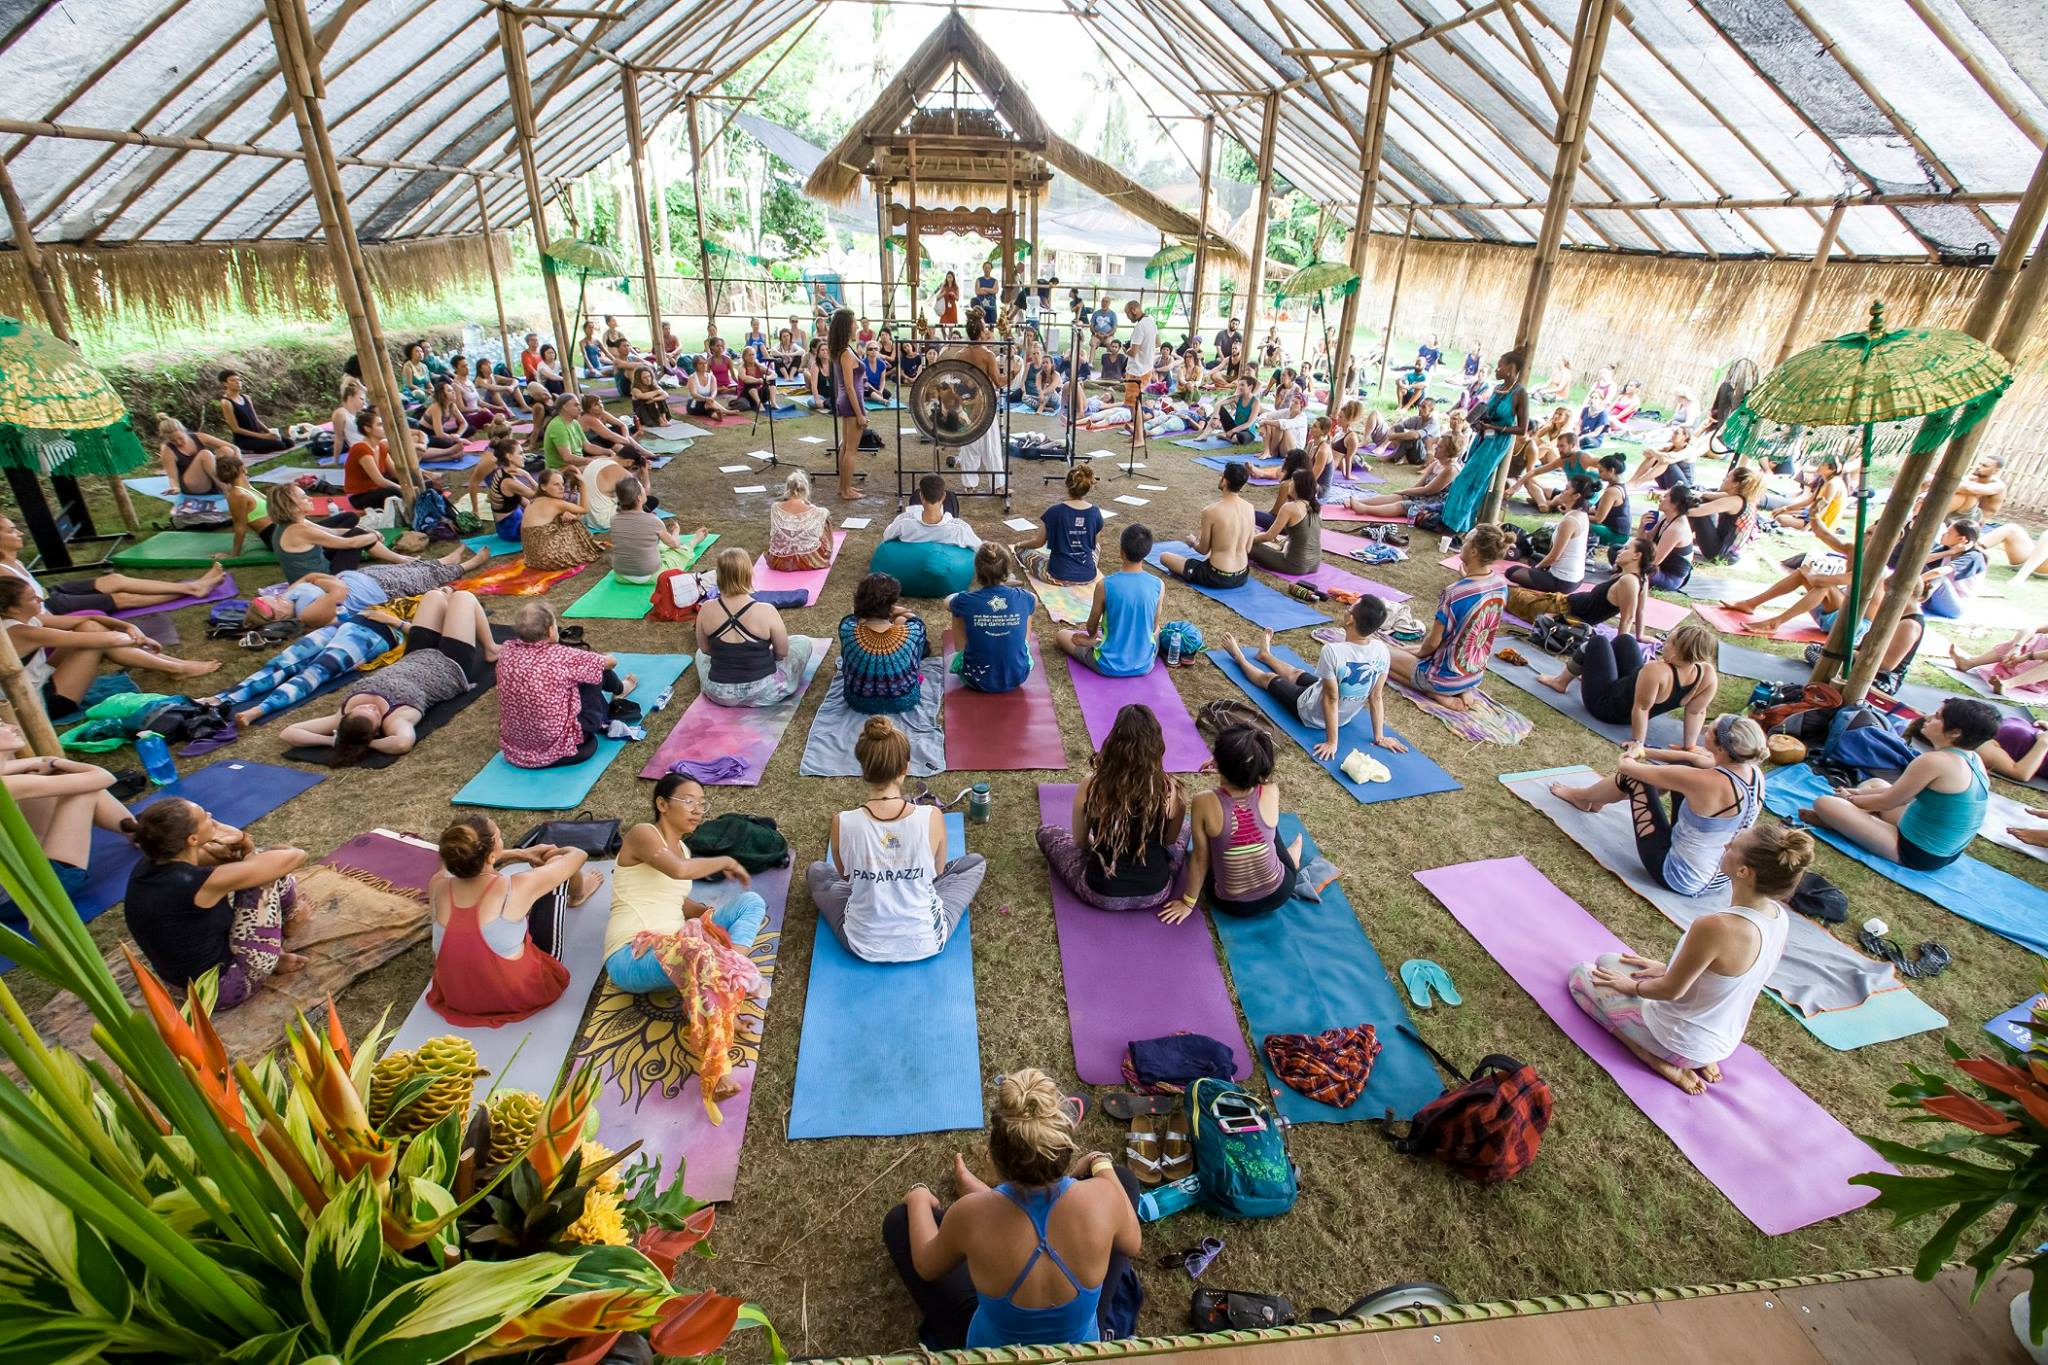 Gong bath meditation in The Jungle Pavilion / Photo credit: Ishine Photography